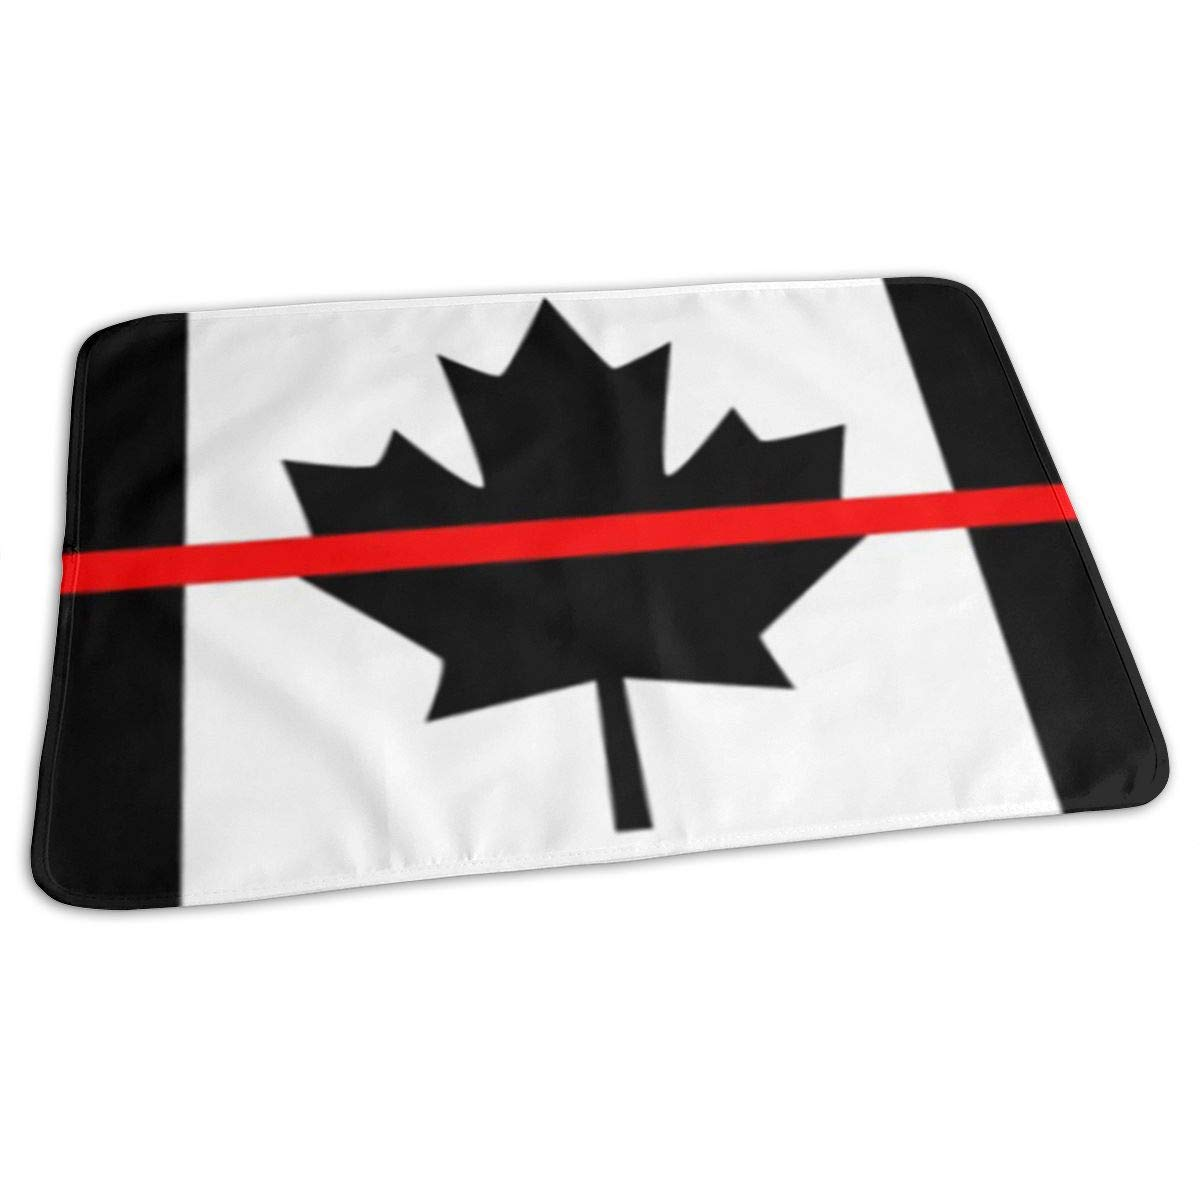 Firefighters Red Line Canada Baby Changing Pad Waterproof Portable Changing Pad Home Travel 27.5¡±x19.7¡±